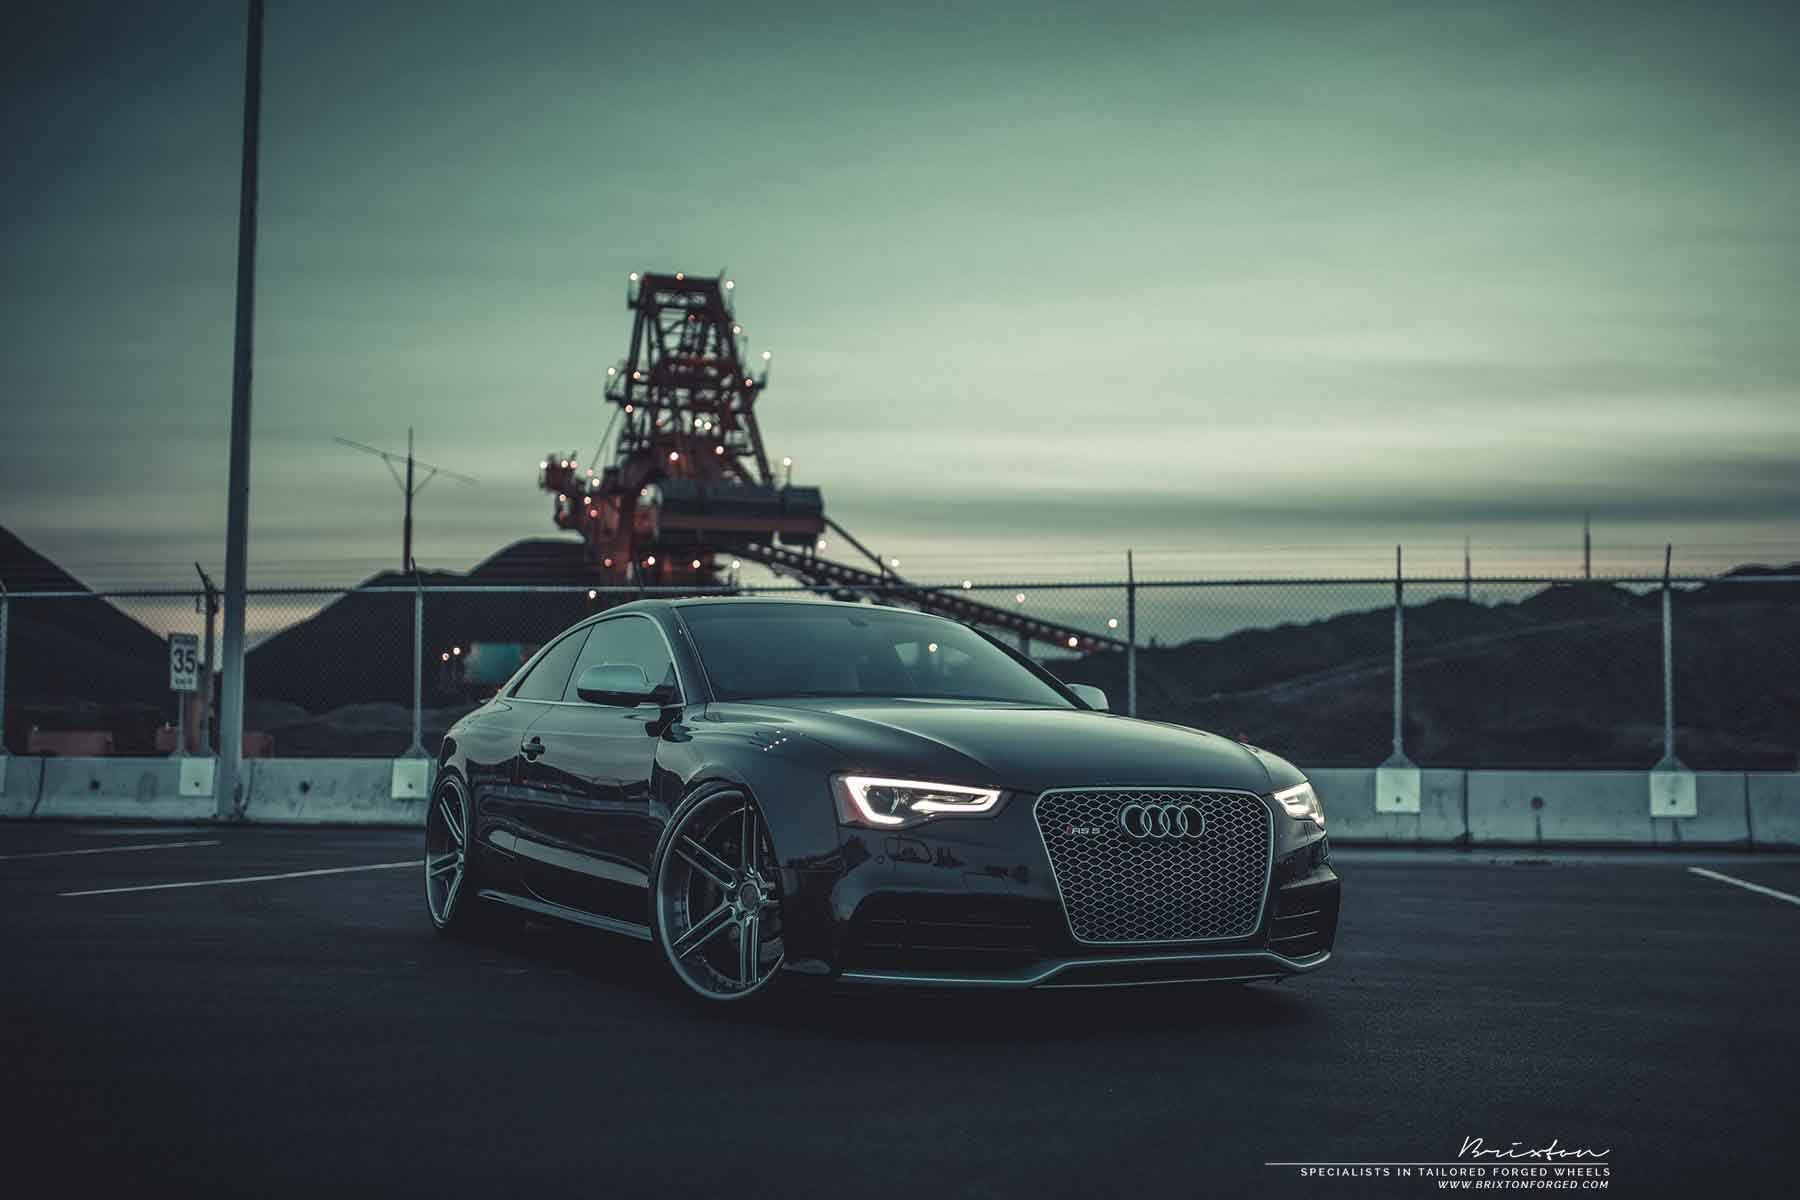 images-products-1-2213-232974501-brixton-forged-black-audi-rs5-brixton-m52-monaco-series-21-inch-3-piece-forged-wheels-brushed-po.jpg